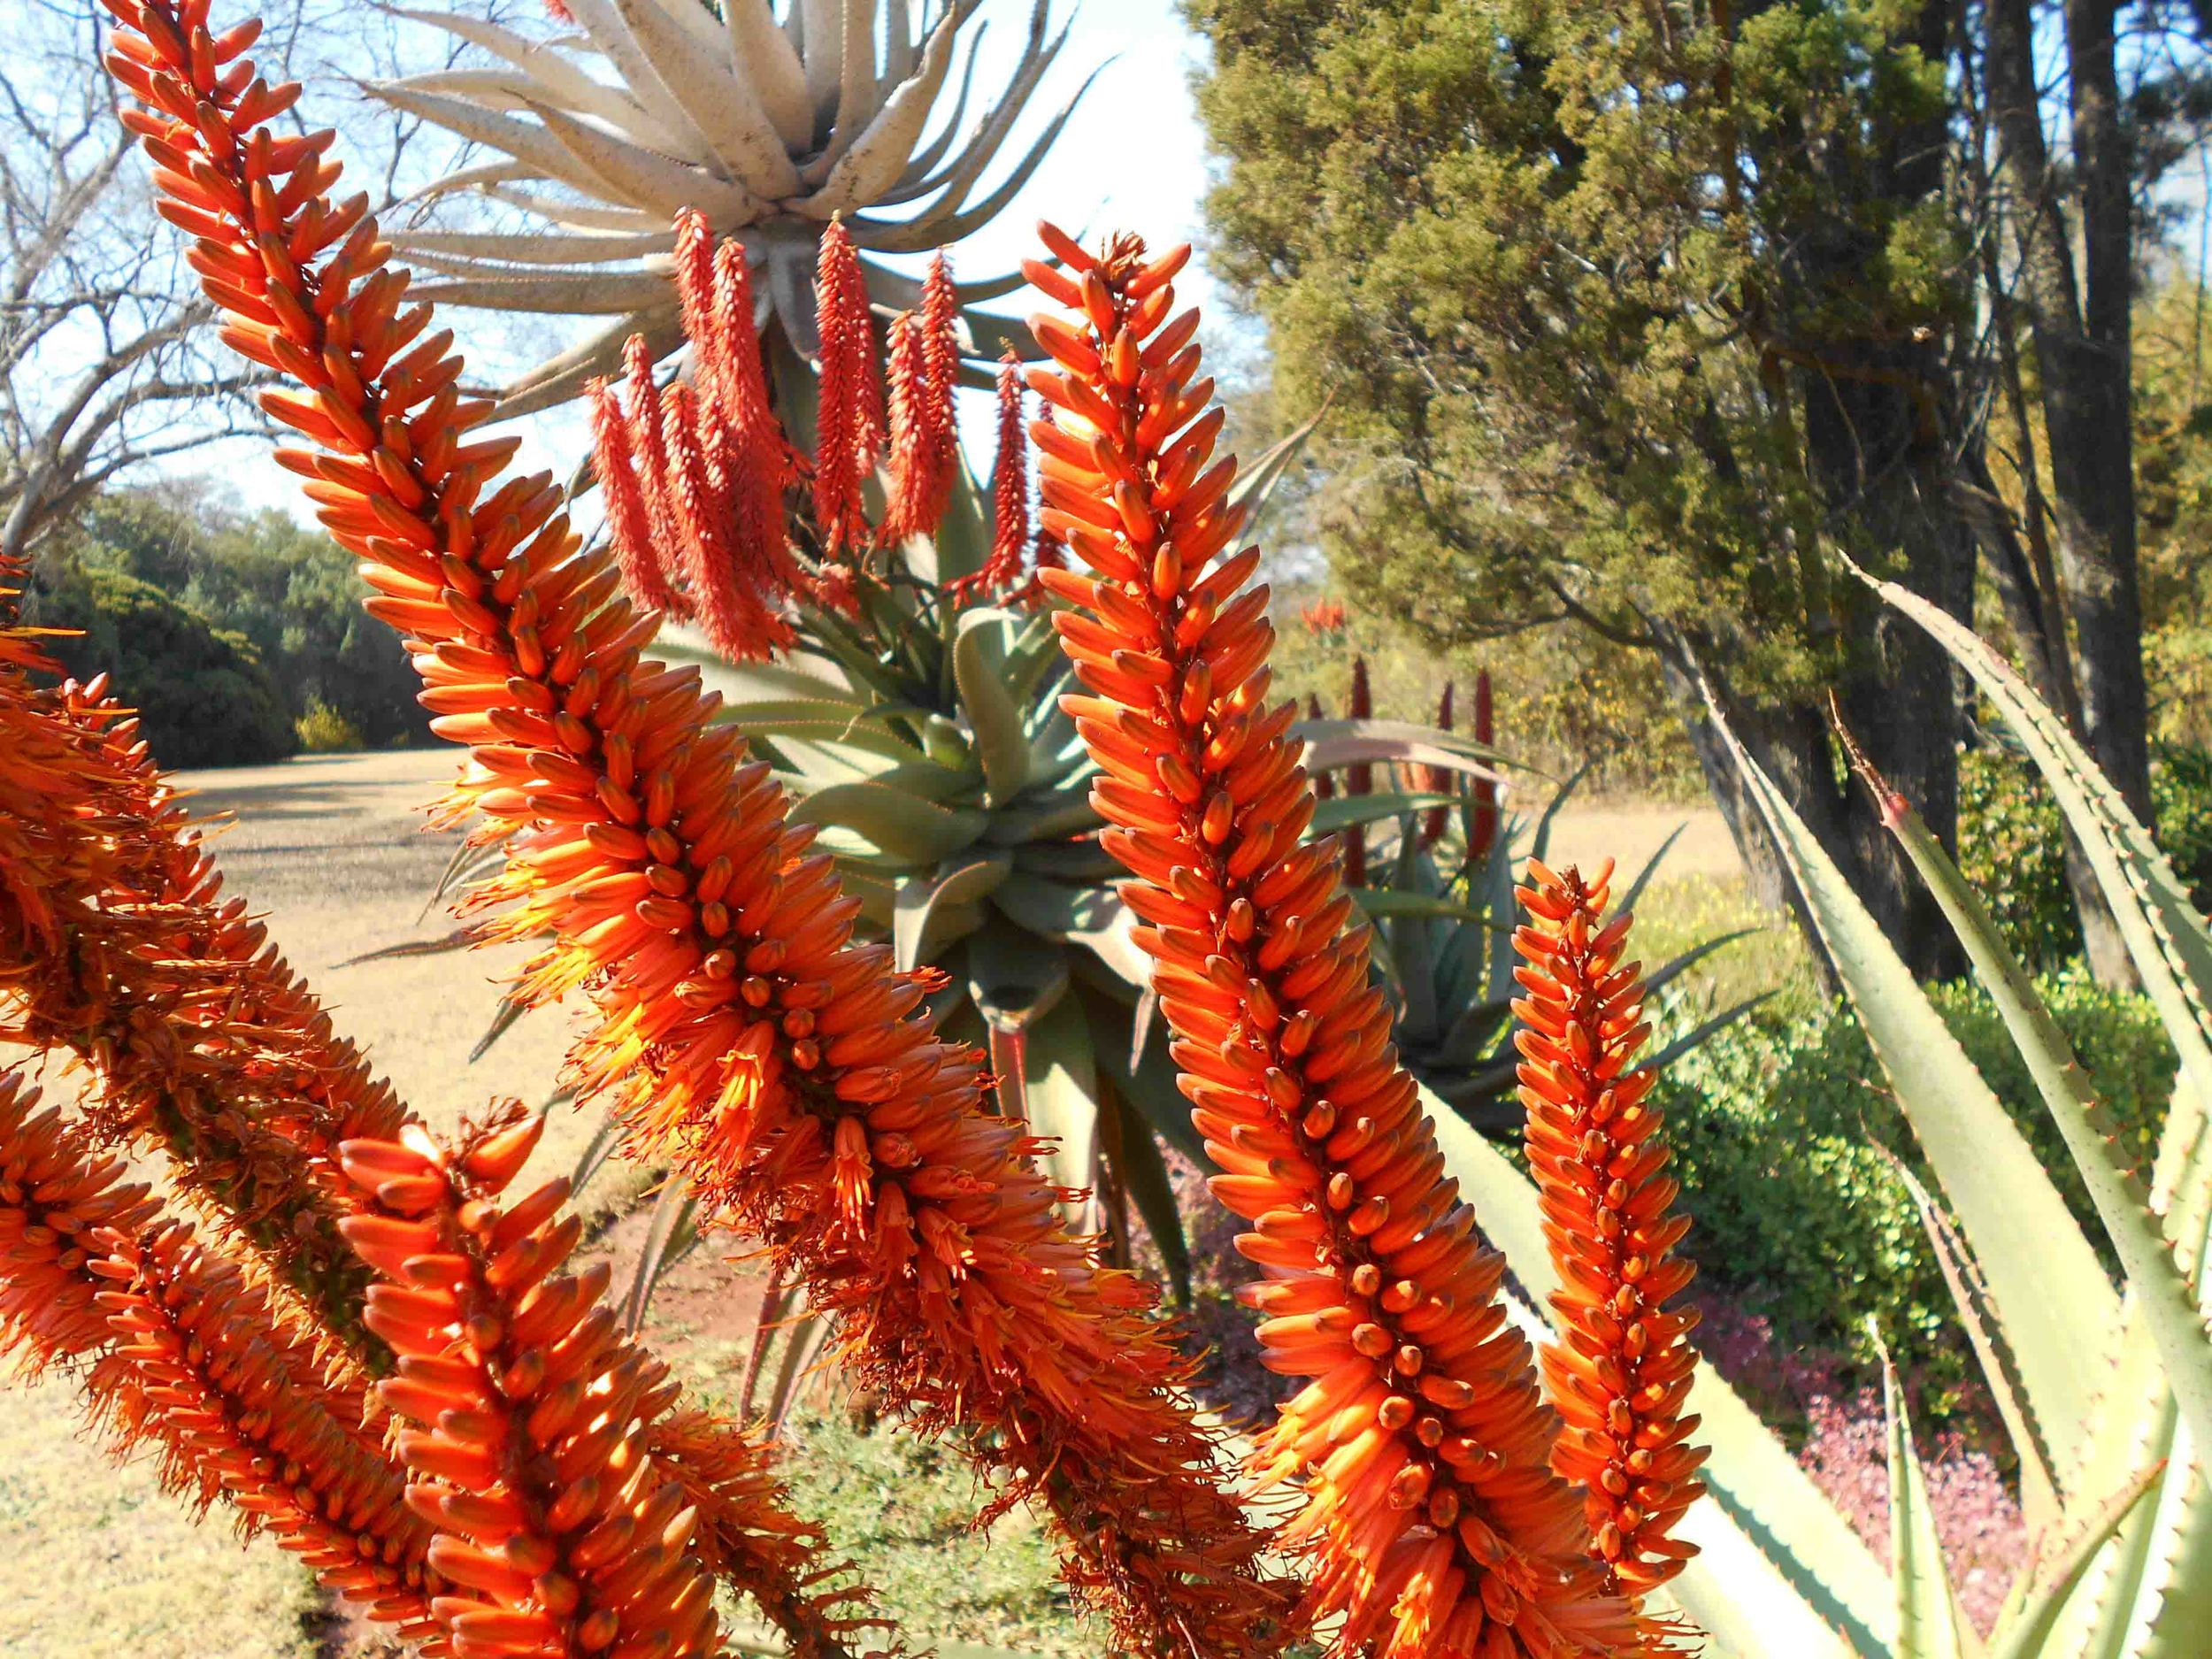 Aloes look striking this time of year! Love watching the sunbirds hop around on them